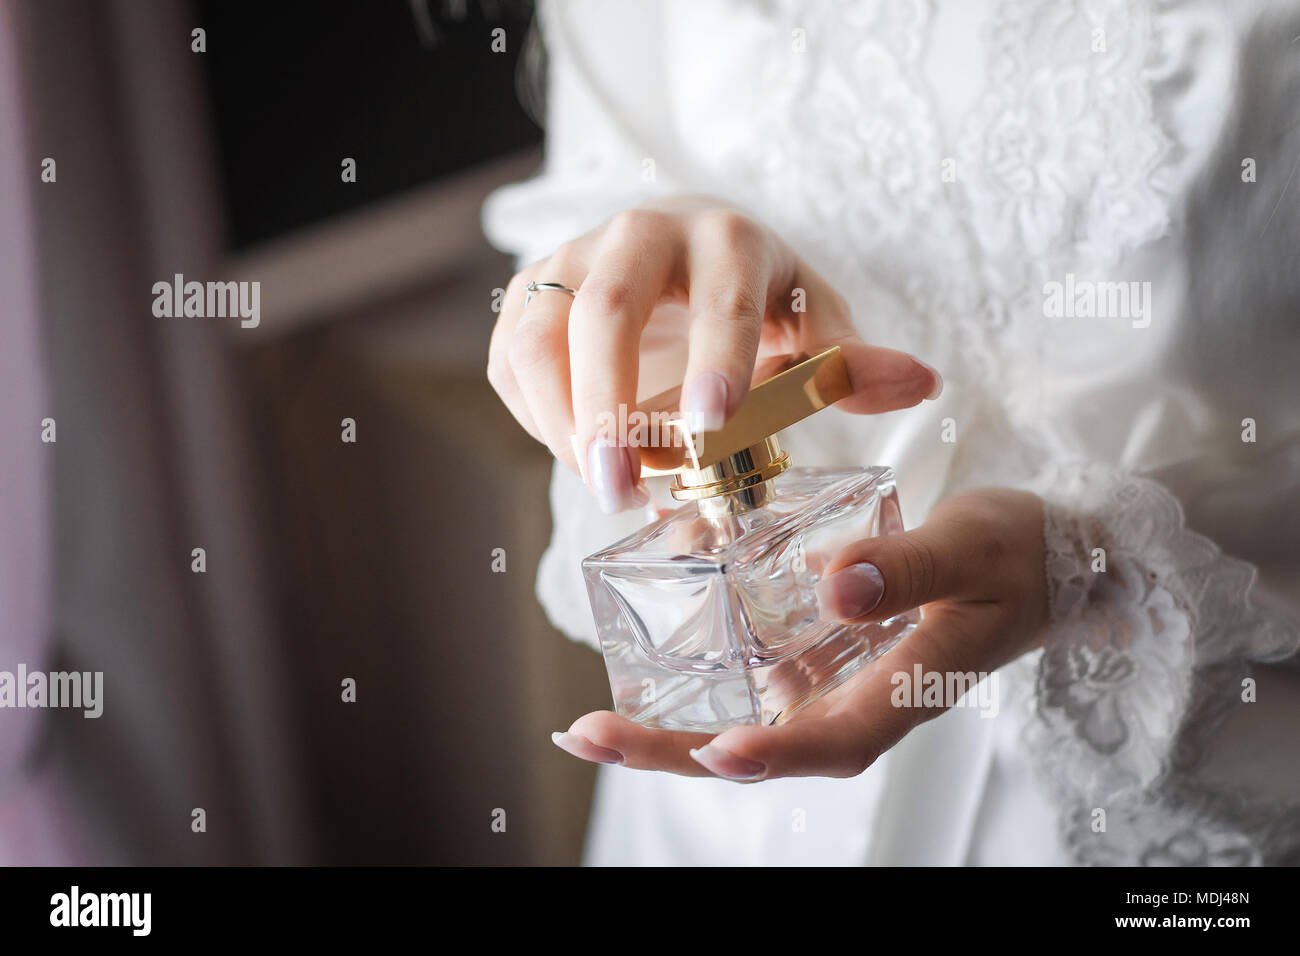 bride opening a flacon of a fragrant perfume - Stock Image